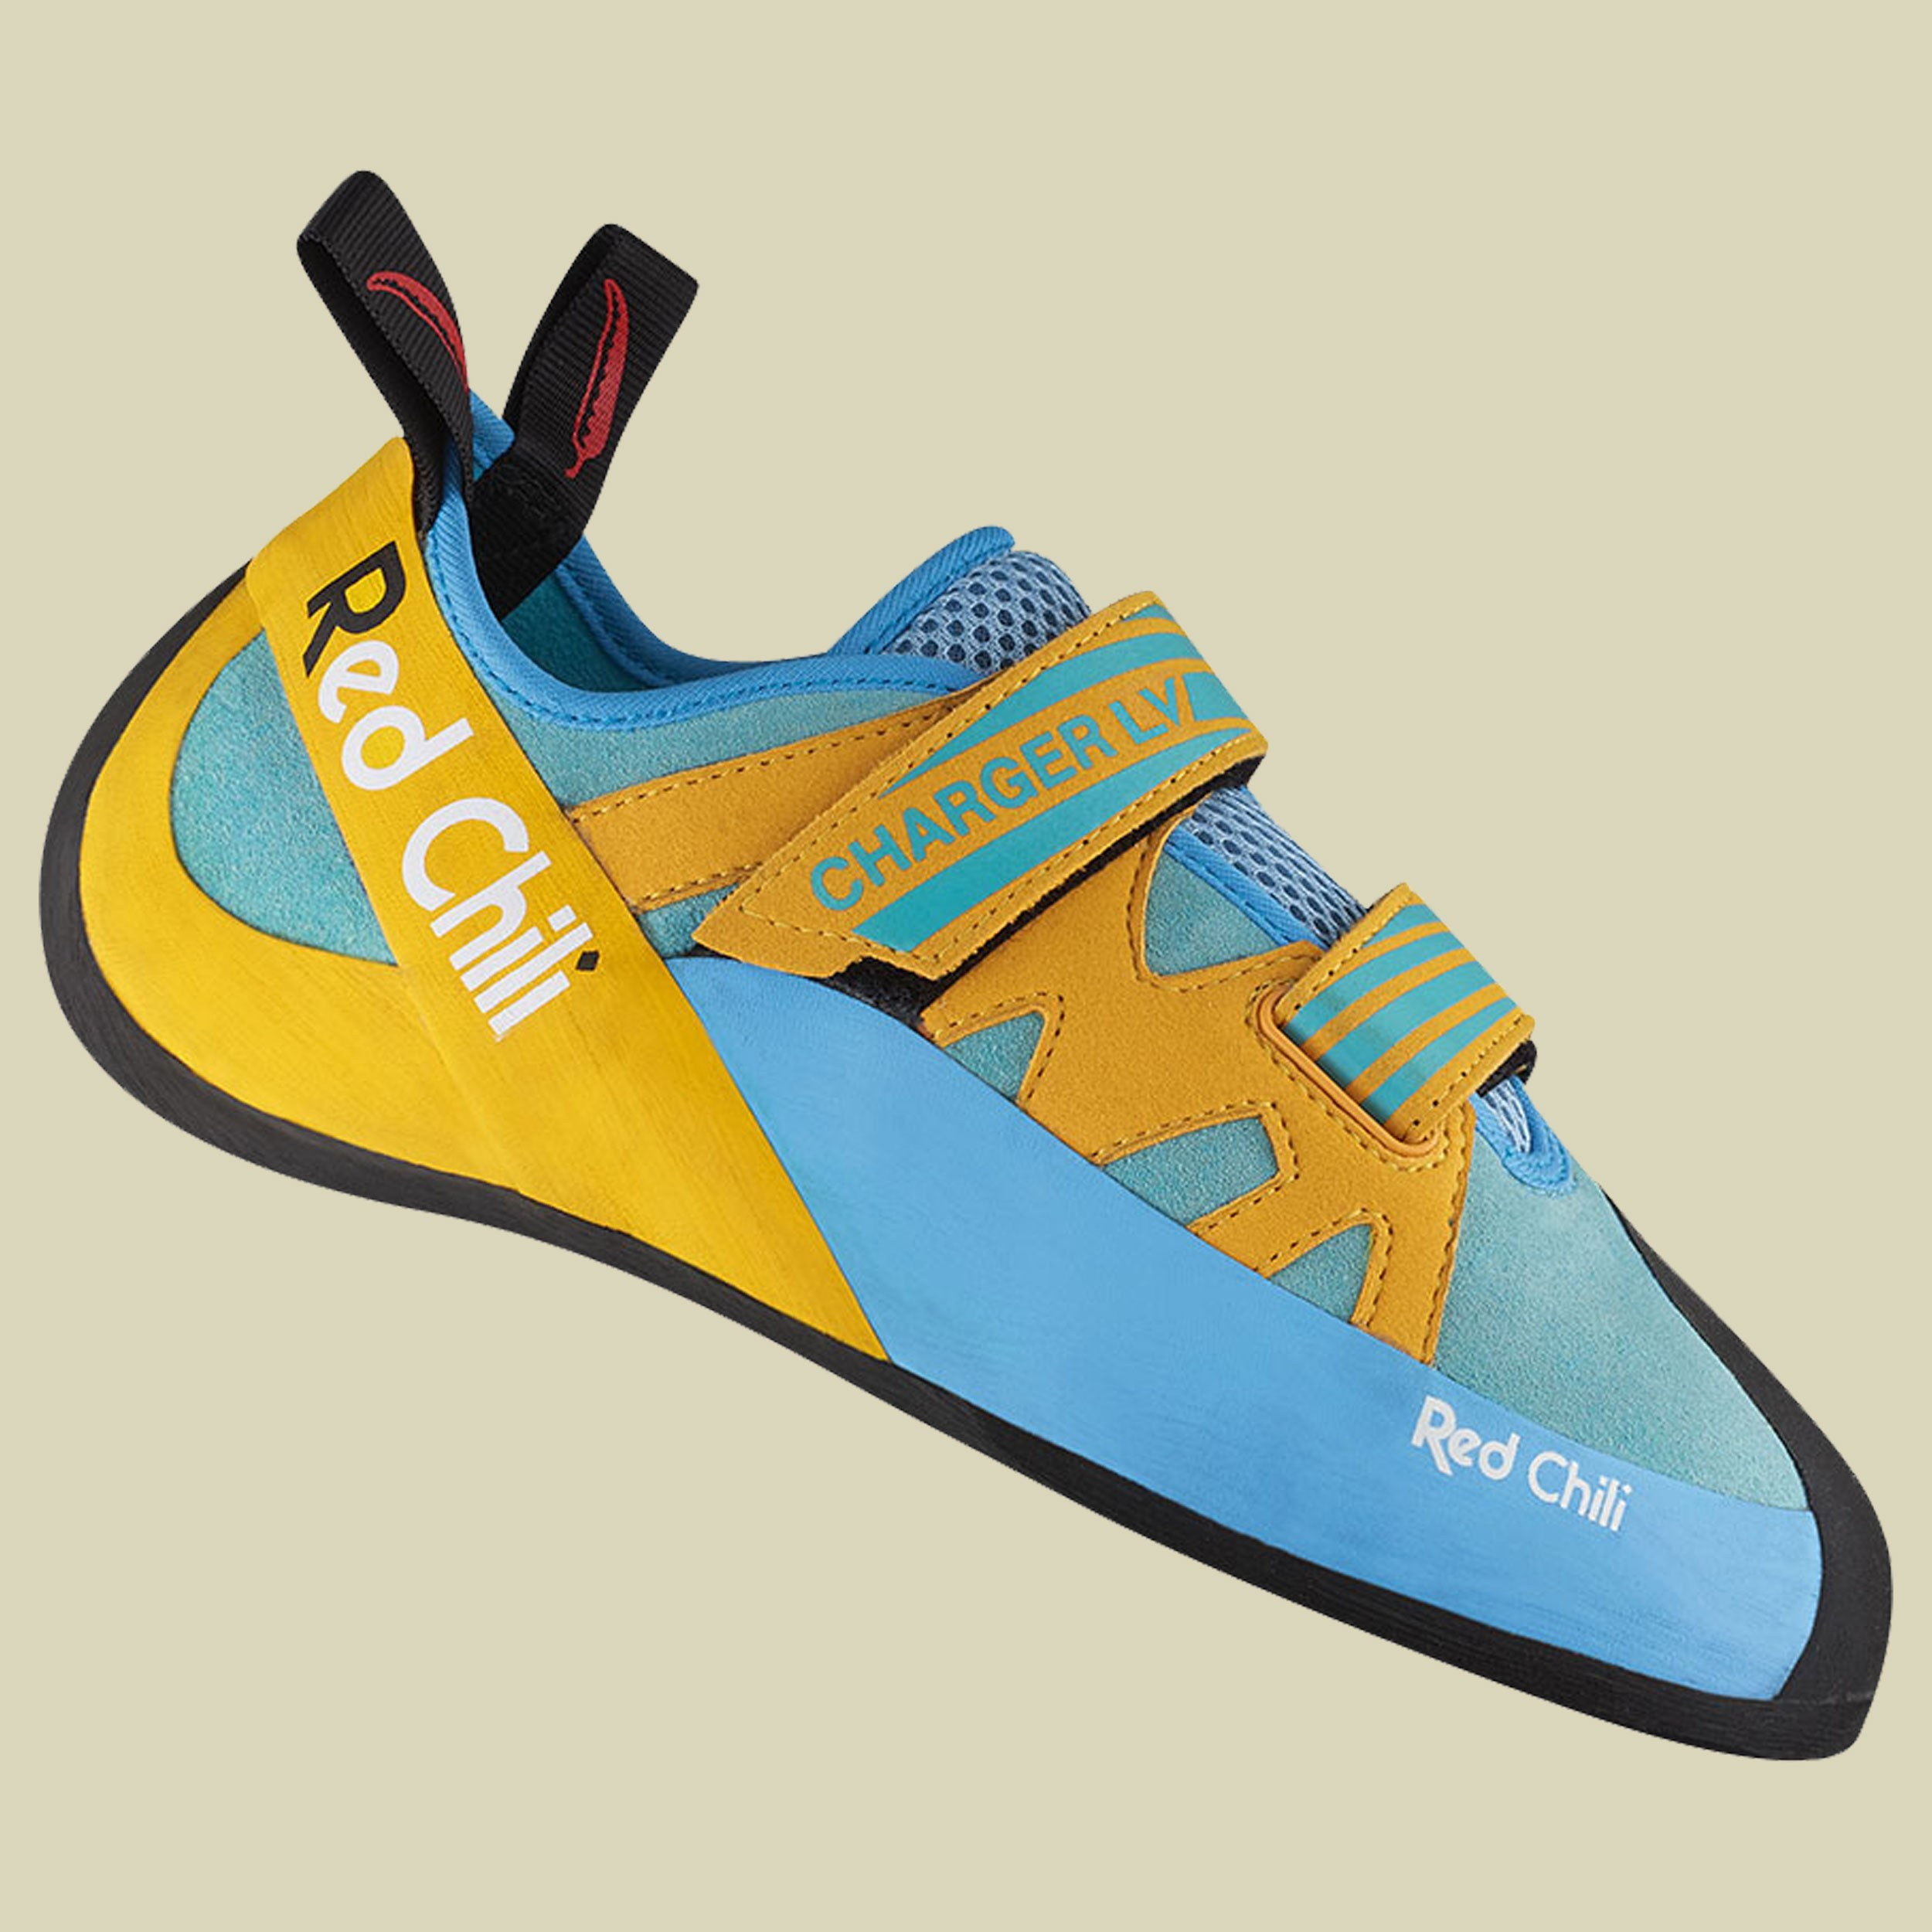 Charger LV Climbing Shoe Unisex